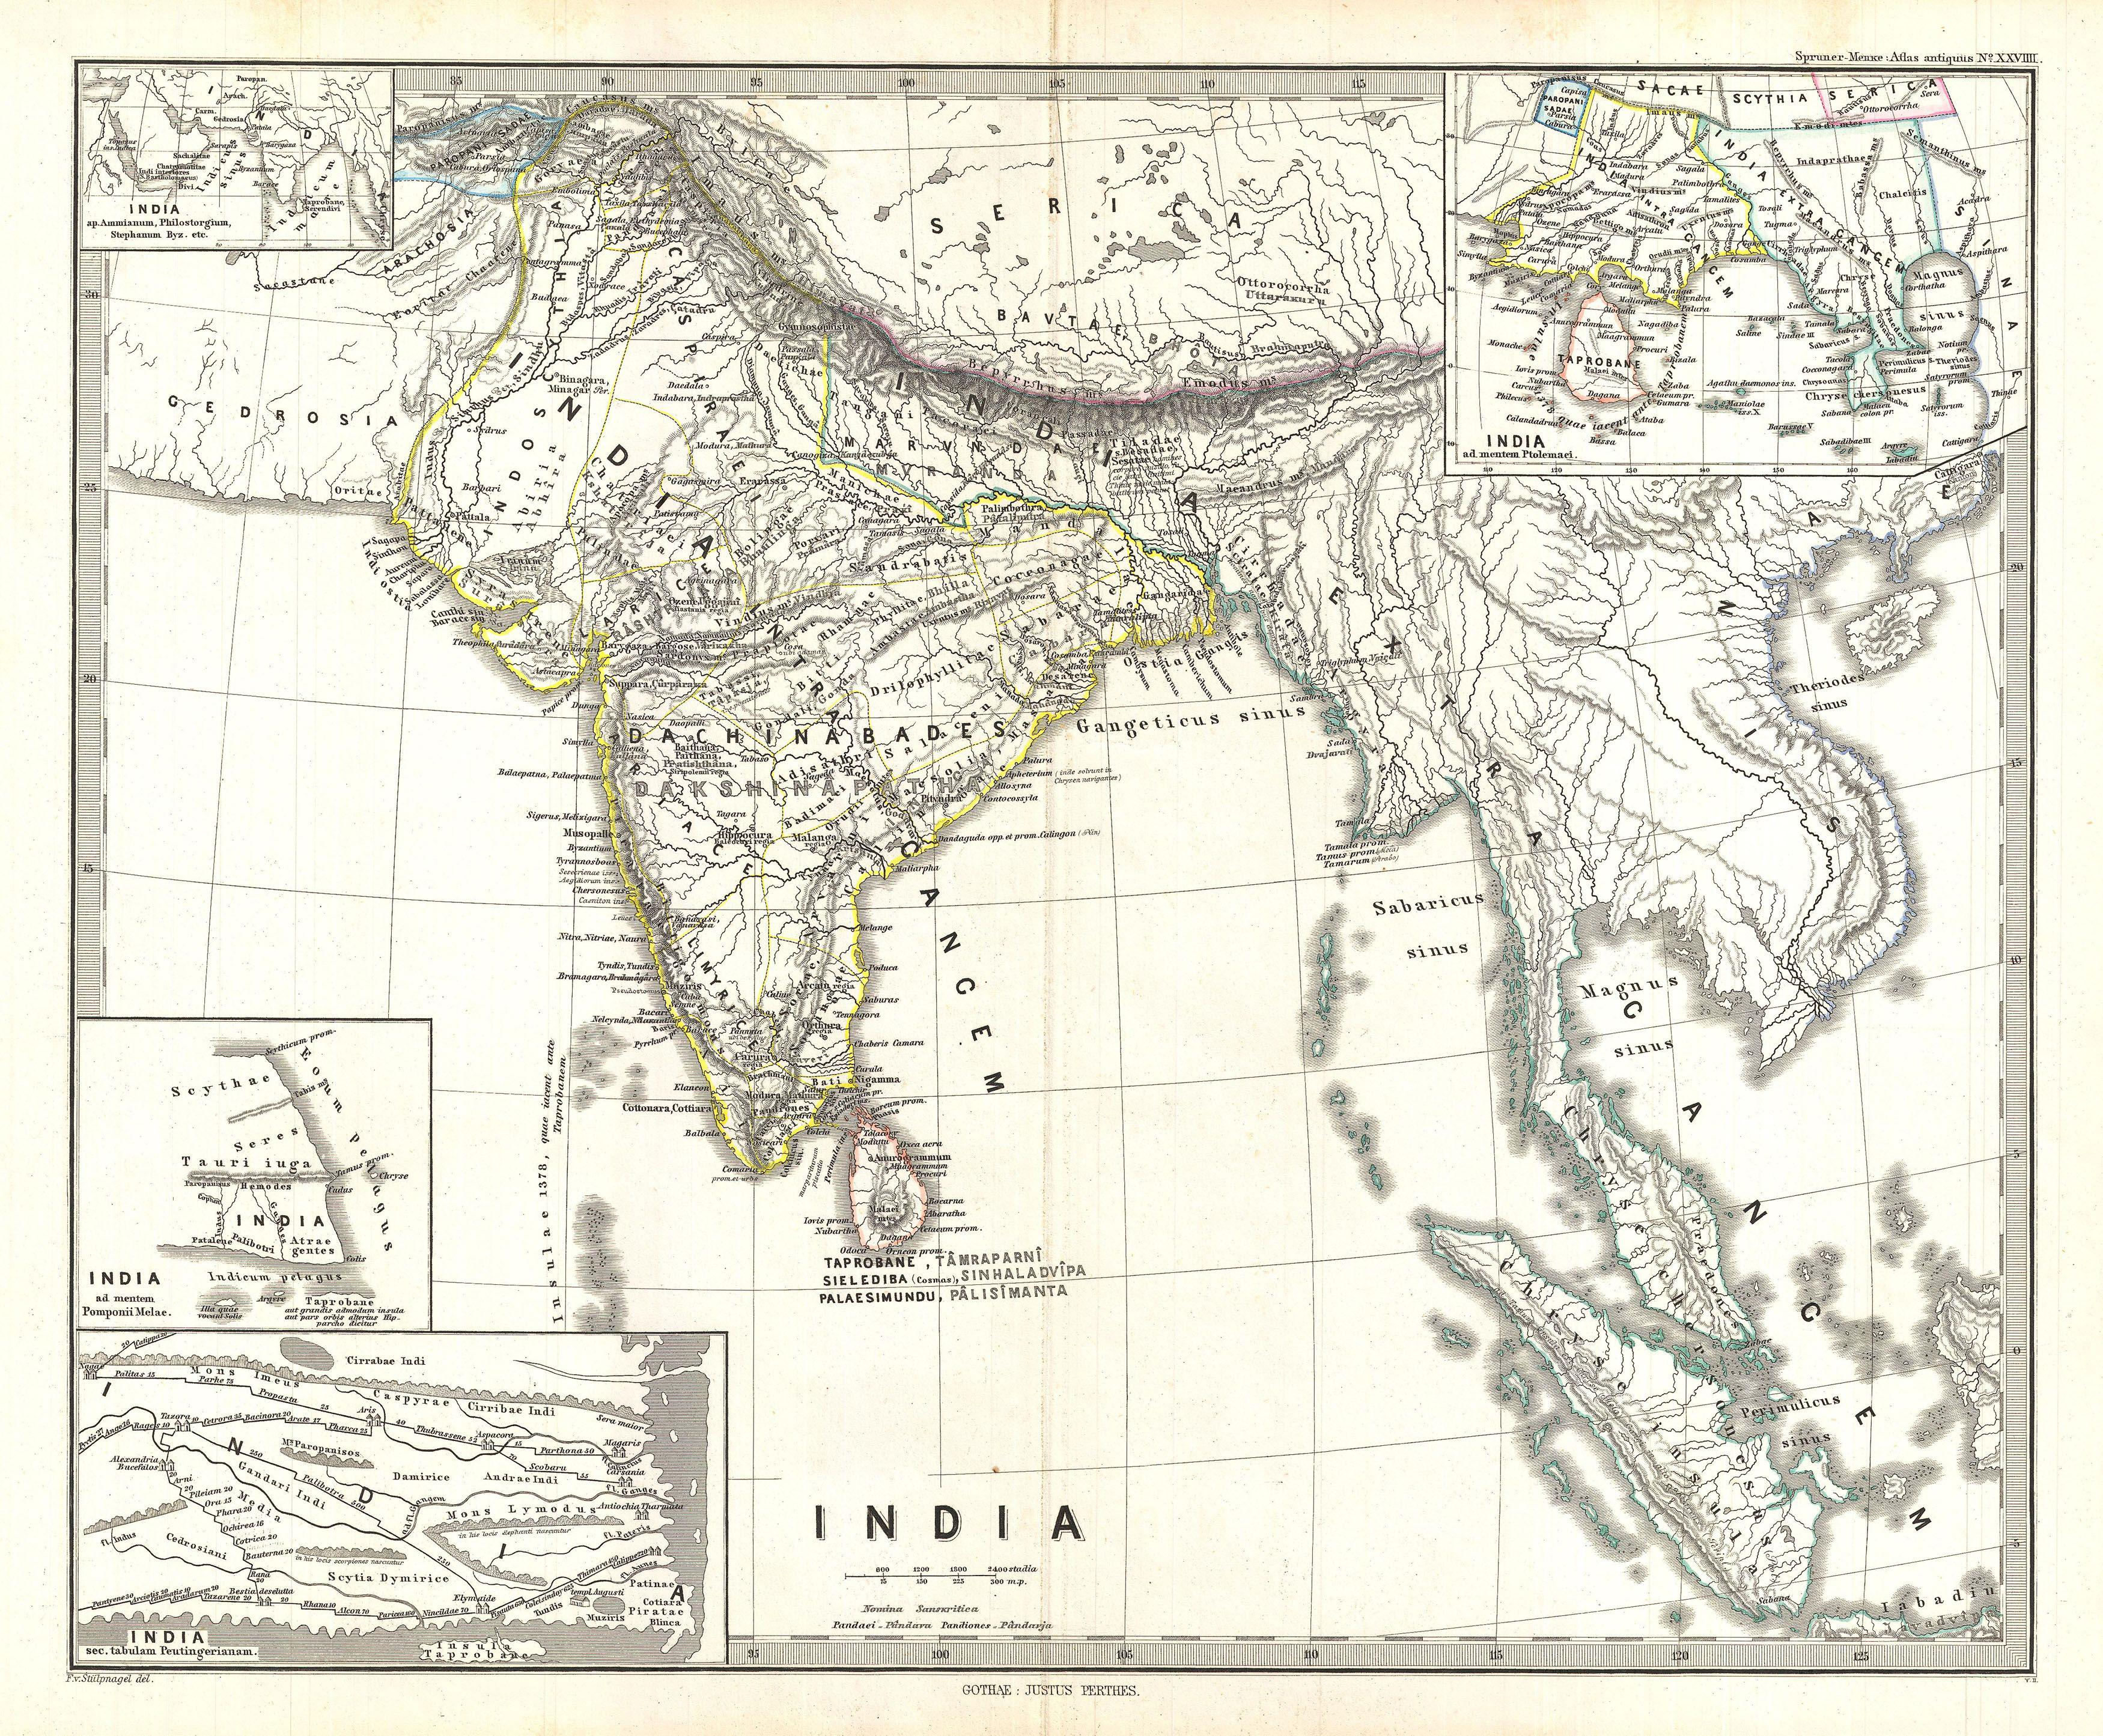 India In Asia Map.File 1865 Spruner Map Of India And Southeast Asia Geographicus